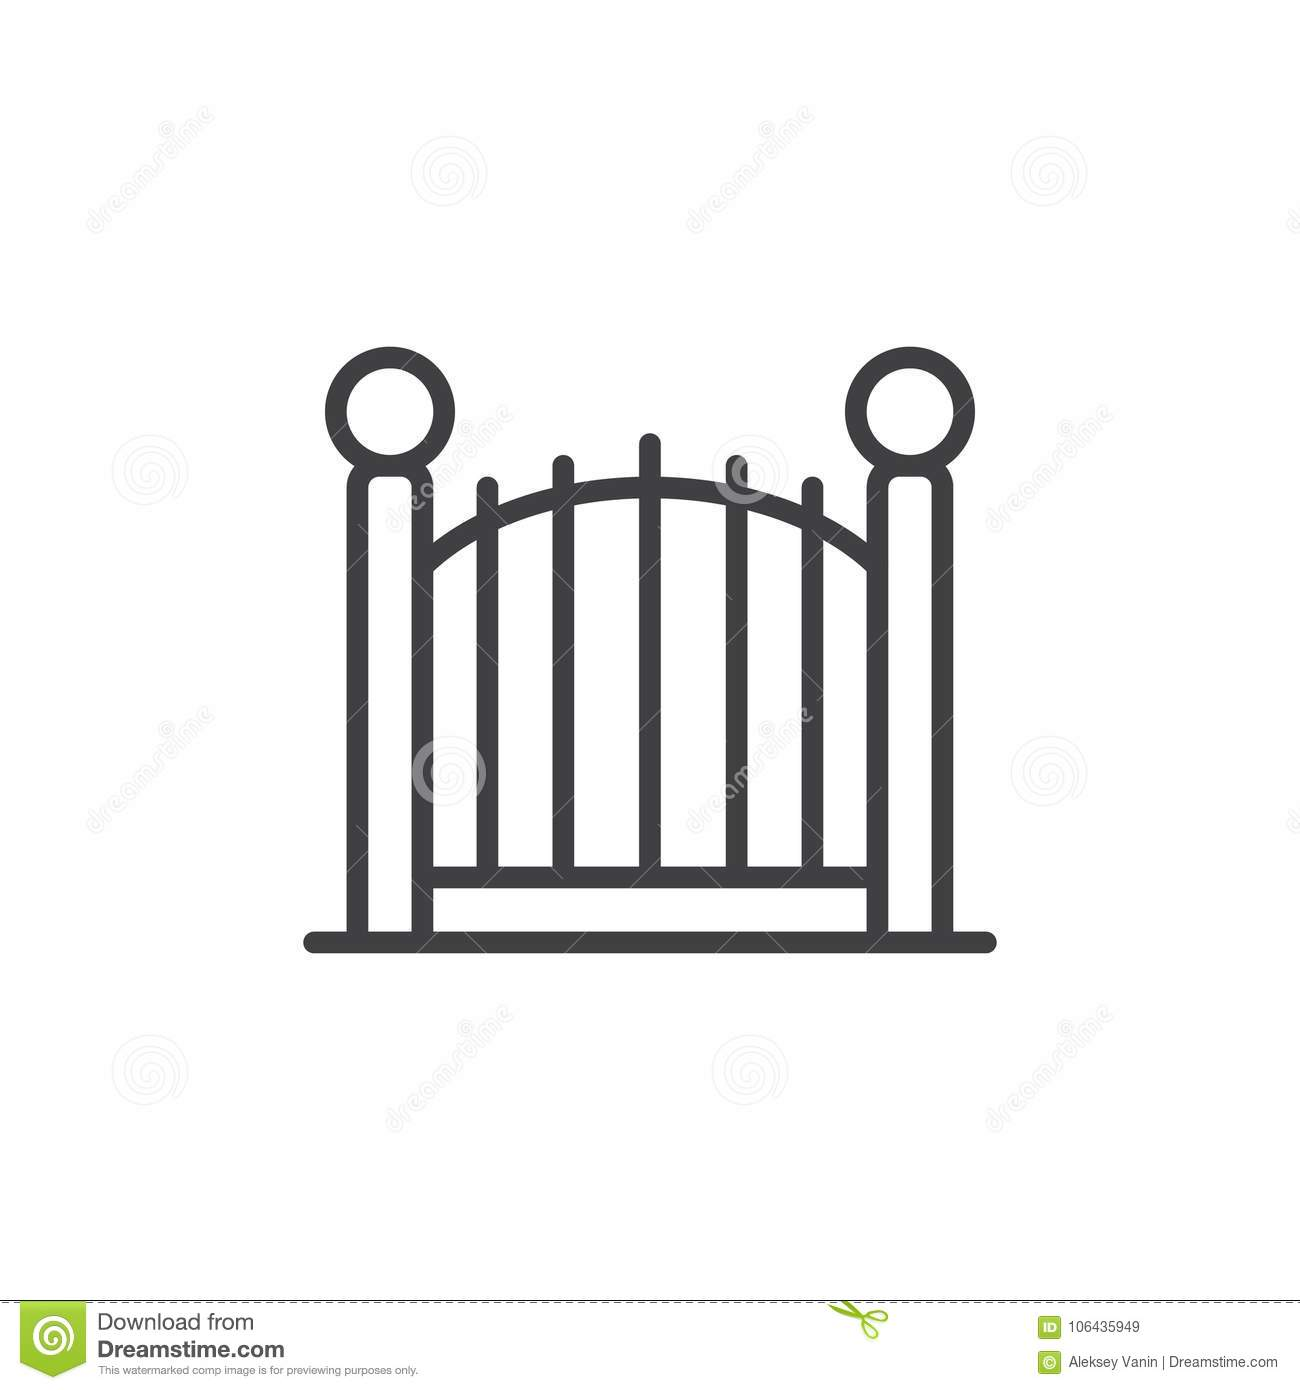 Decorative Gate Line Icon Stock Vector Illustration Of And Symbol Outline Sign Linear Style Pictogram Isolated On White Park Fence Logo Editable Stroke